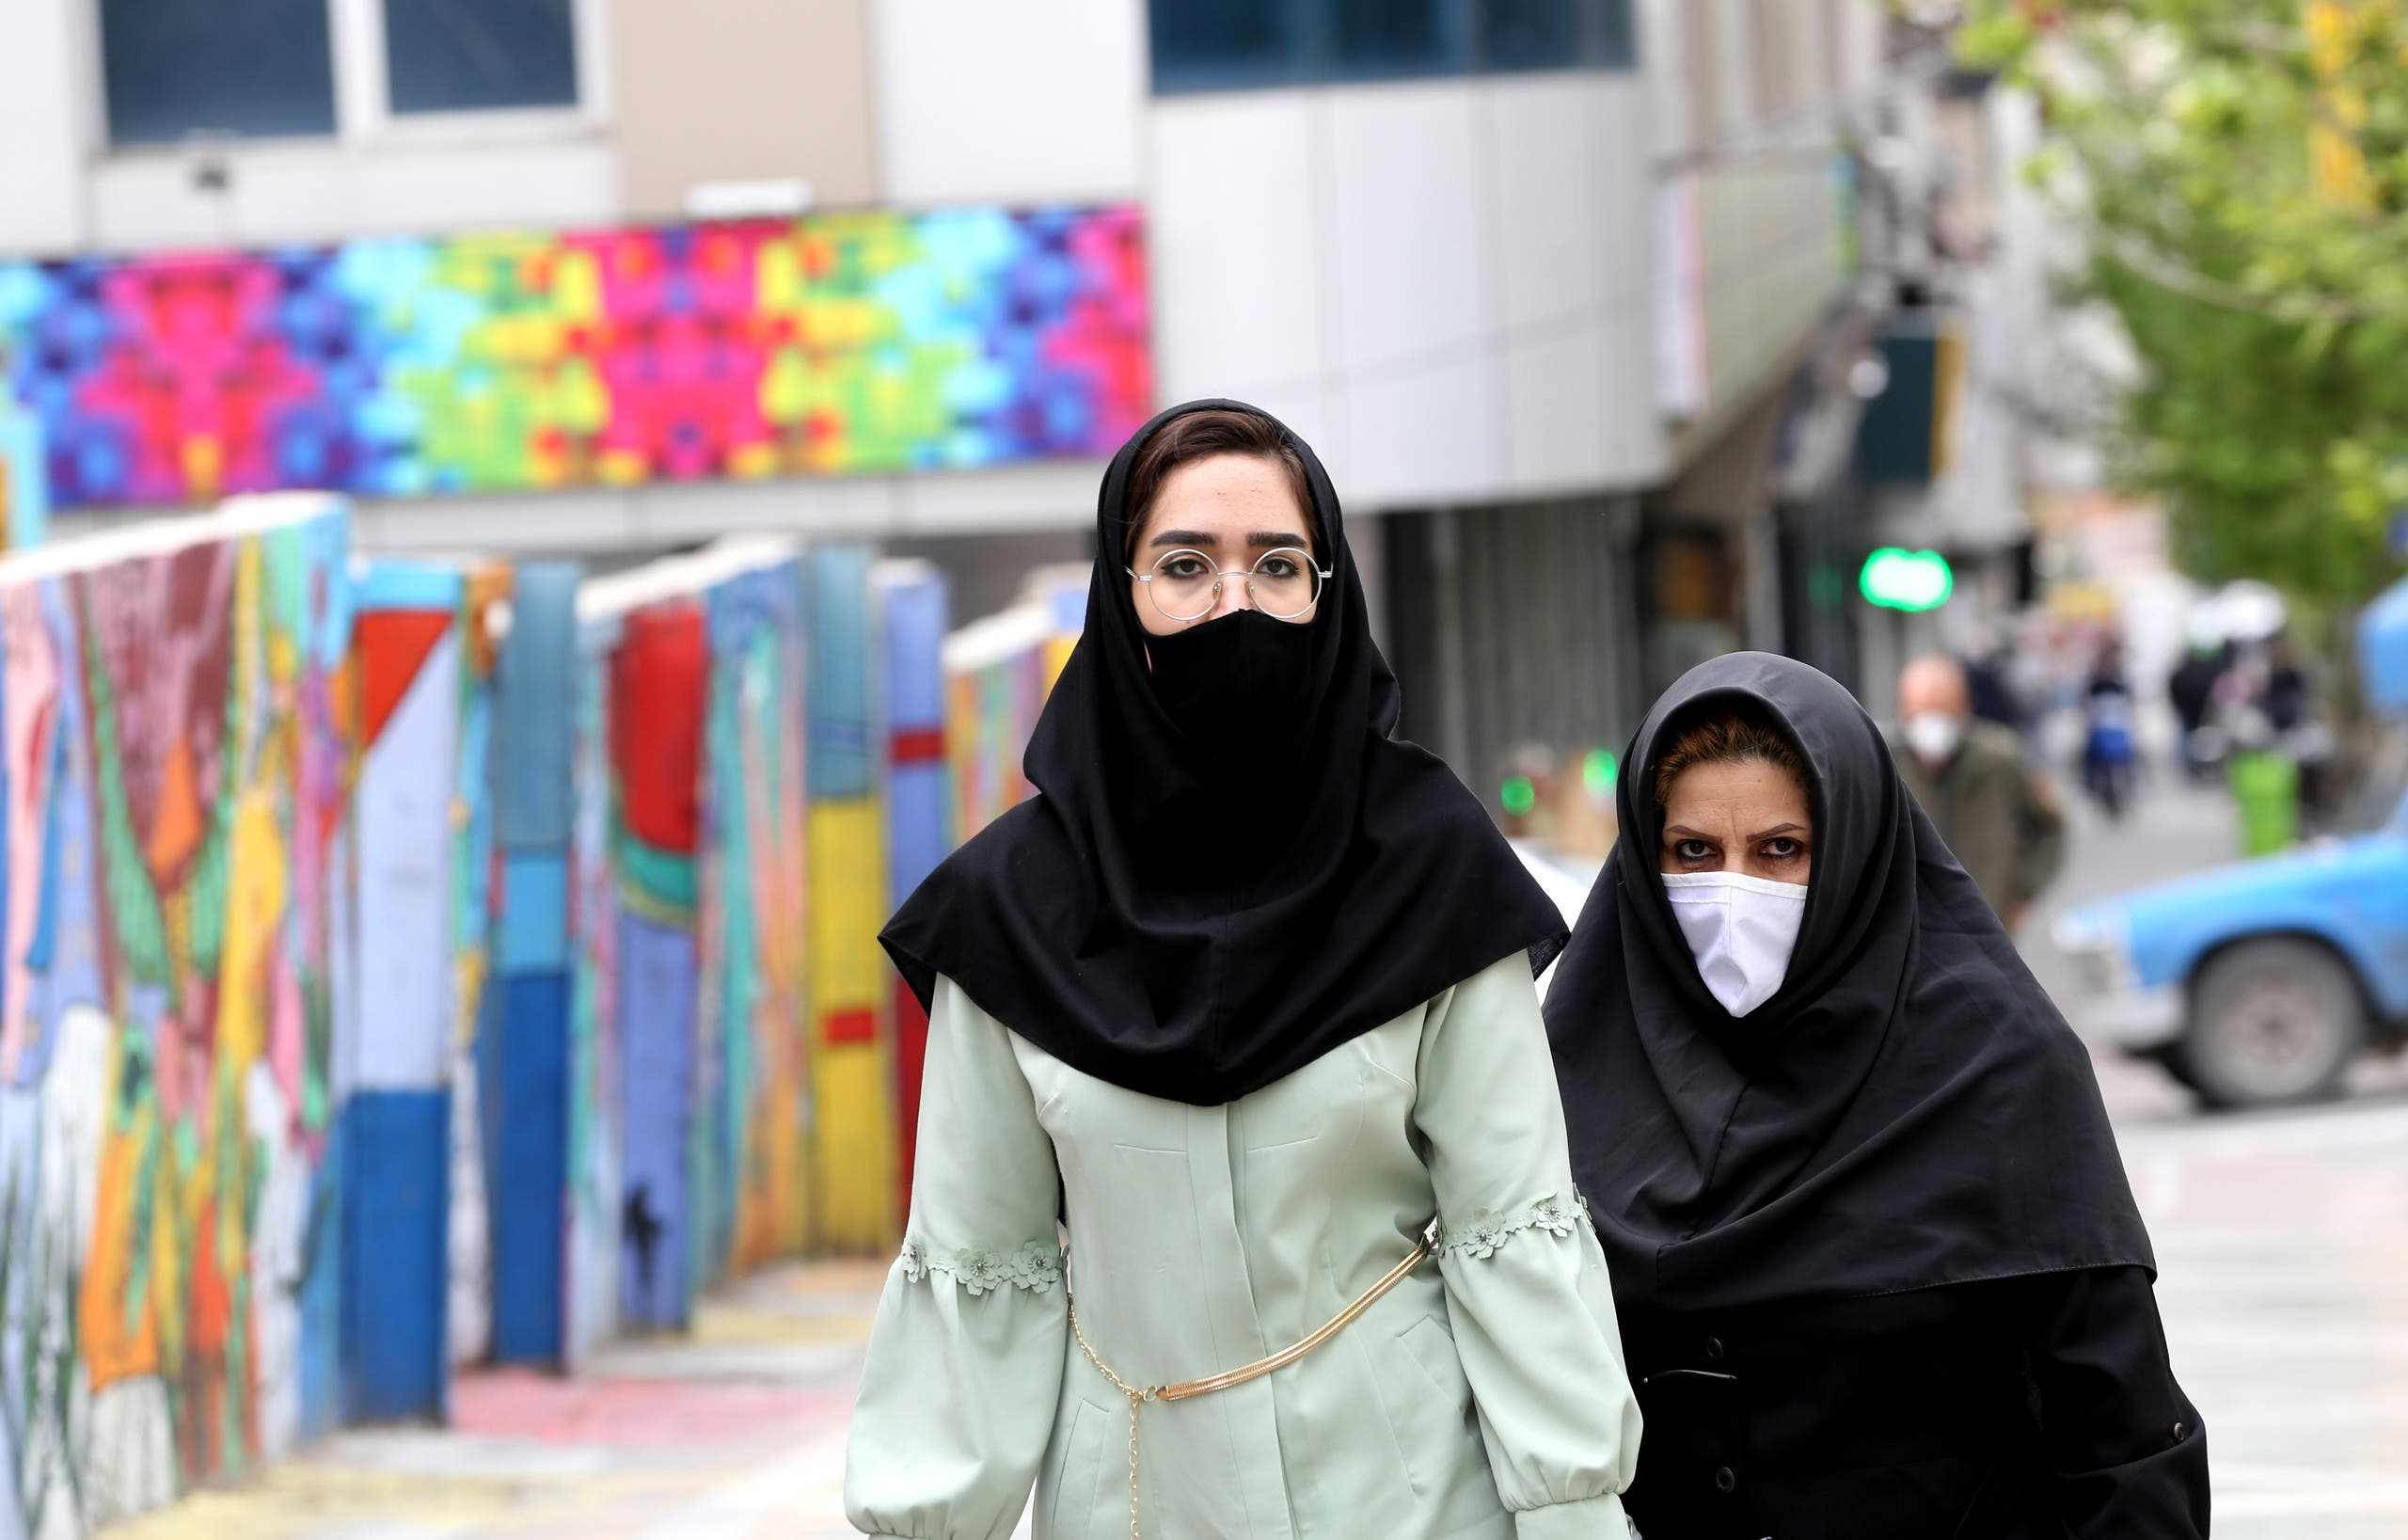 Iranians wearing protective mask walk past graffiti on a wall in Tehran on April 13, 2020 during the coronavirus COVID-19 pandemic. Iran's health ministry today reported another 111 deaths from the novel coronavirus, taking the official overall toll in the worst-hit Middle East country to 4,585. Ministry spokesman Kianoush Jahanpour said 1,617 new infections took the total number of cases in the country's outbreak to 73,303, of whom 45,983 had recovered.